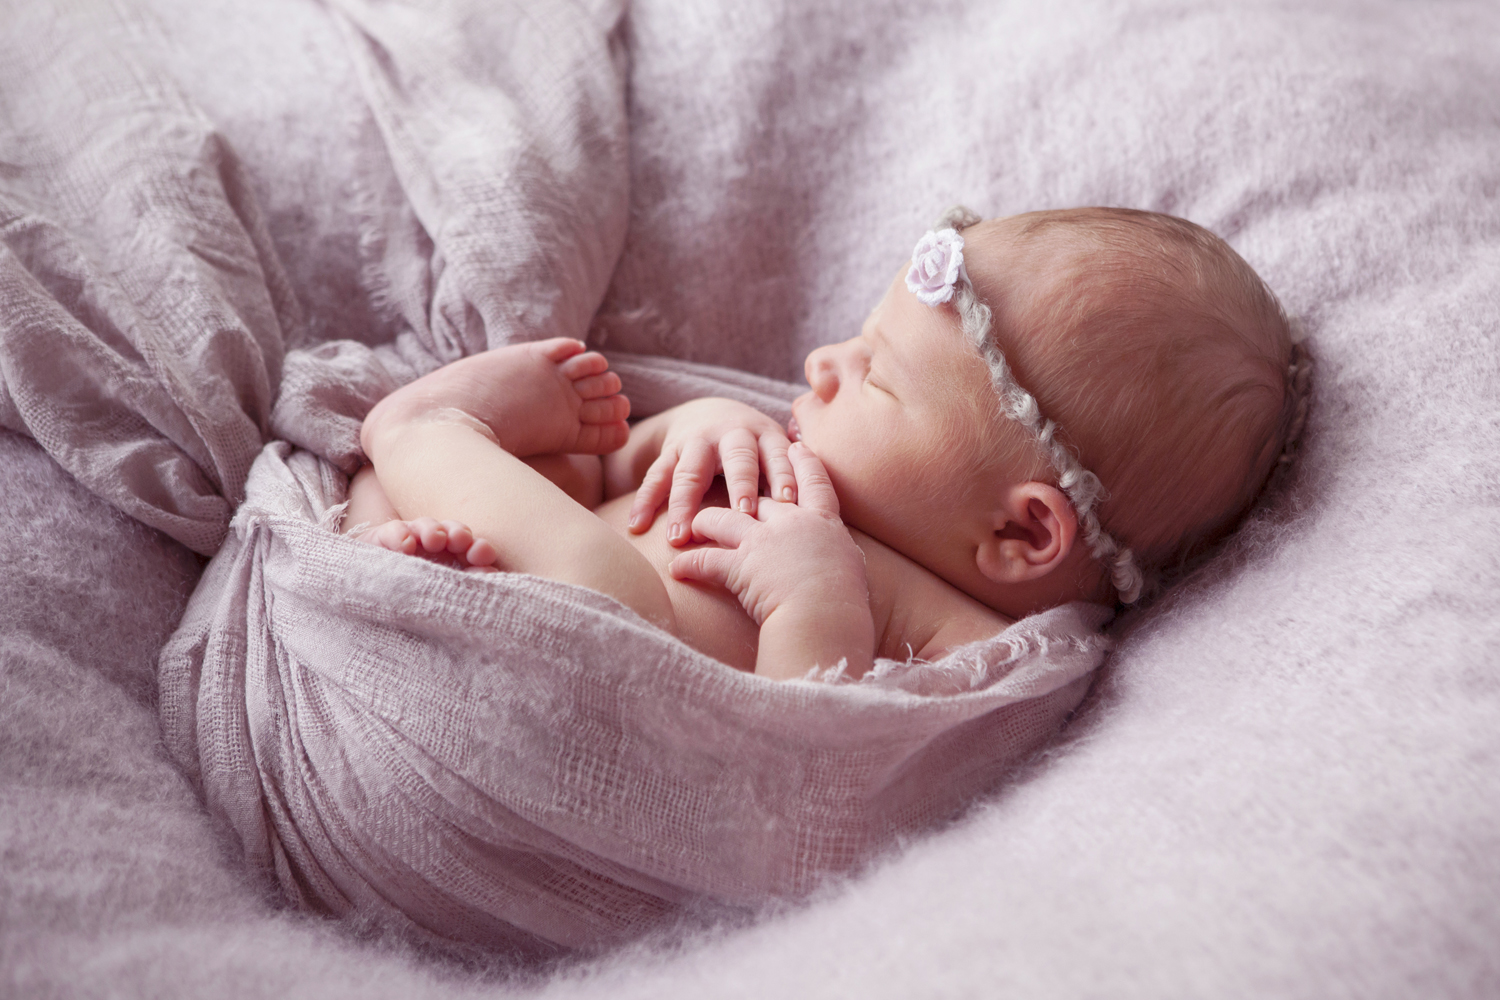 newborn child baby photographer bournemouth dorset.jpg